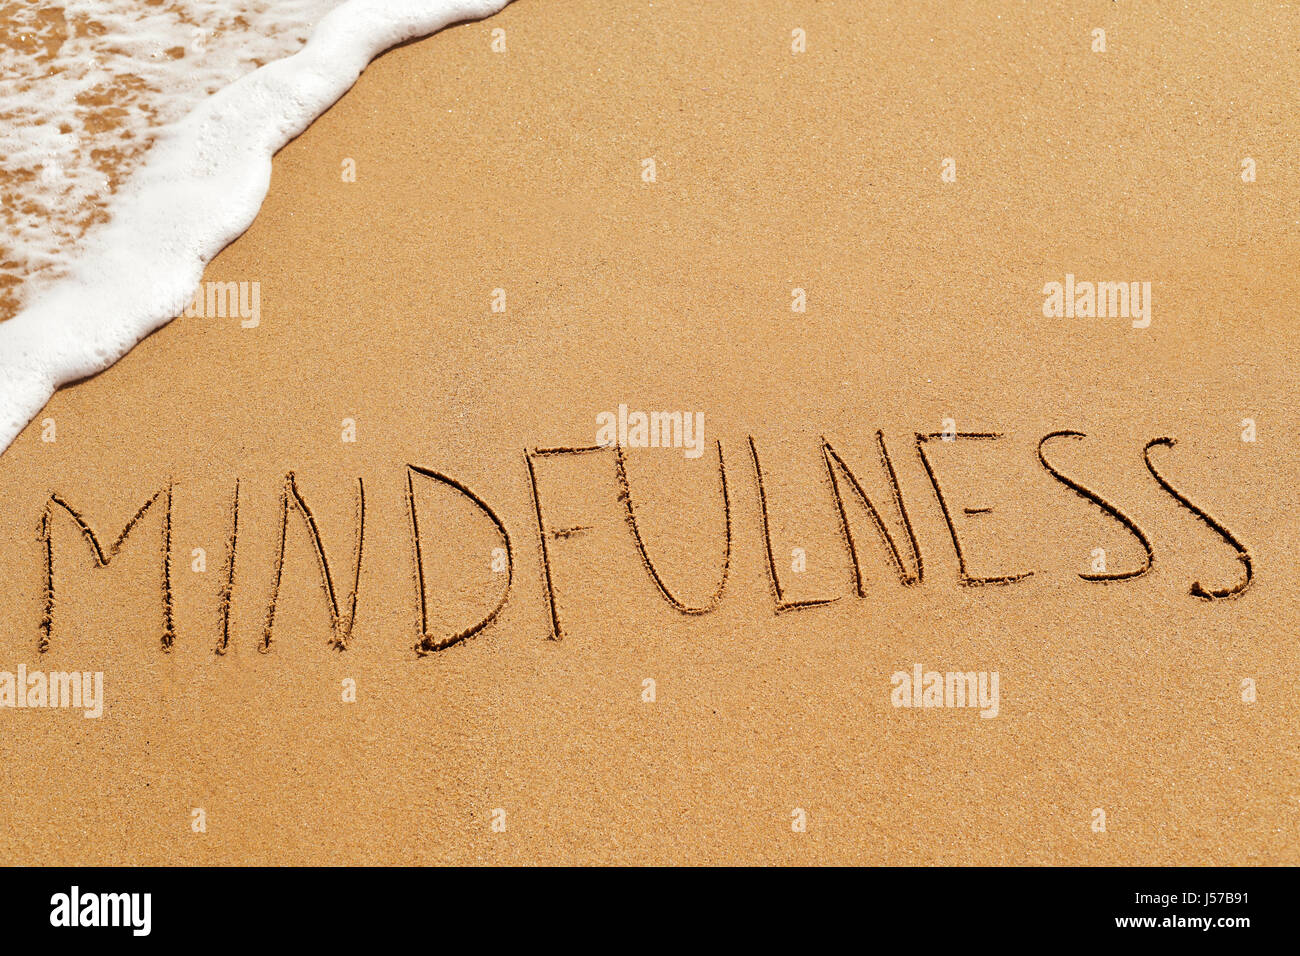 the word mindfulness written in the sand of a beach - Stock Image